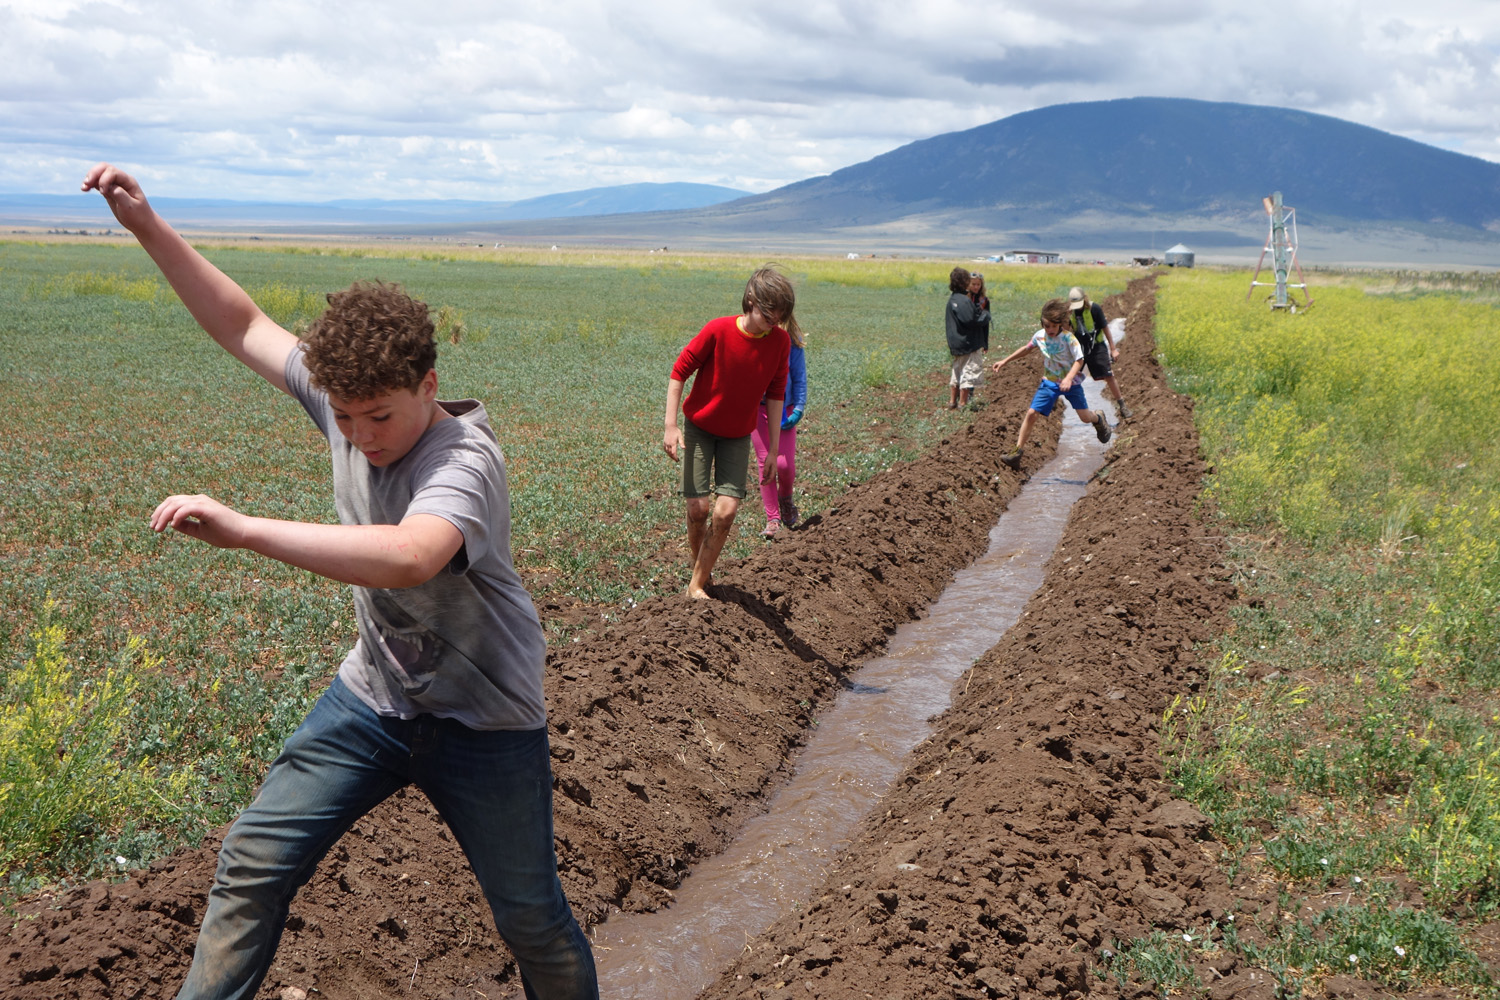 Summer campers from Sangre de Cristo Youth Ranch jump with joy at the first flood flow on Costilla Farm